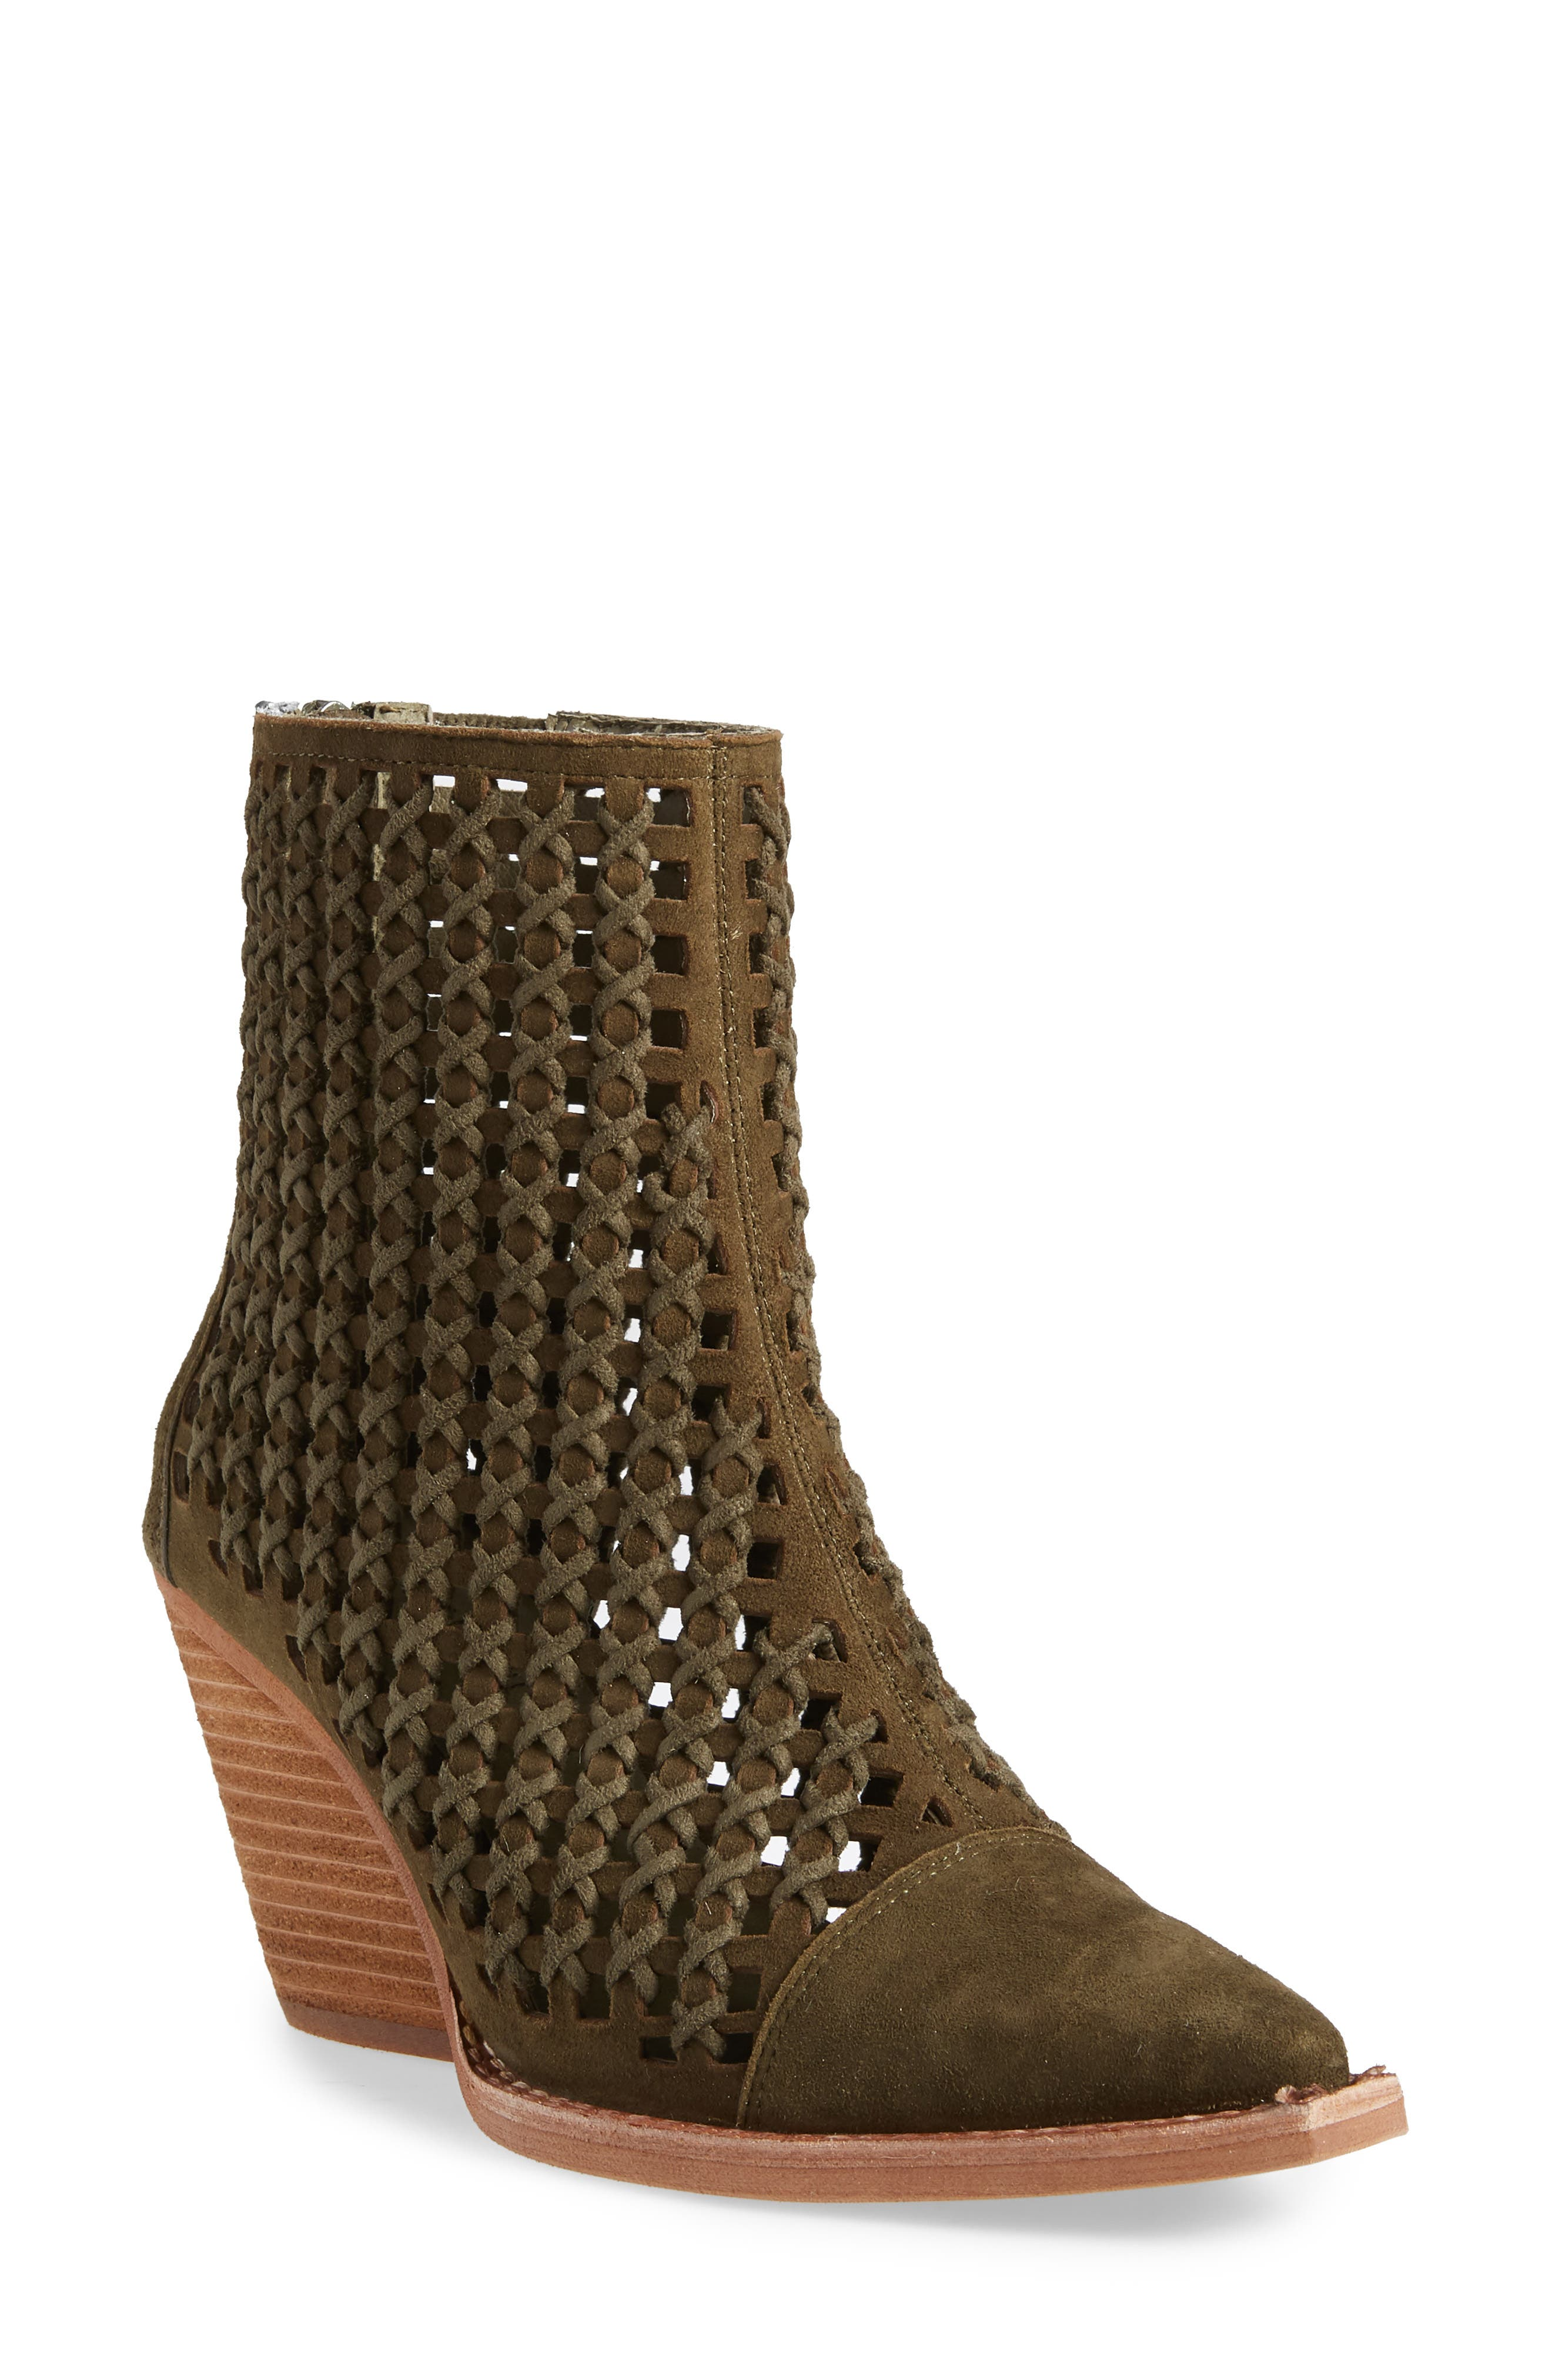 Oakwood Perforated Bootie,                         Main,                         color, KHAKI SUEDE